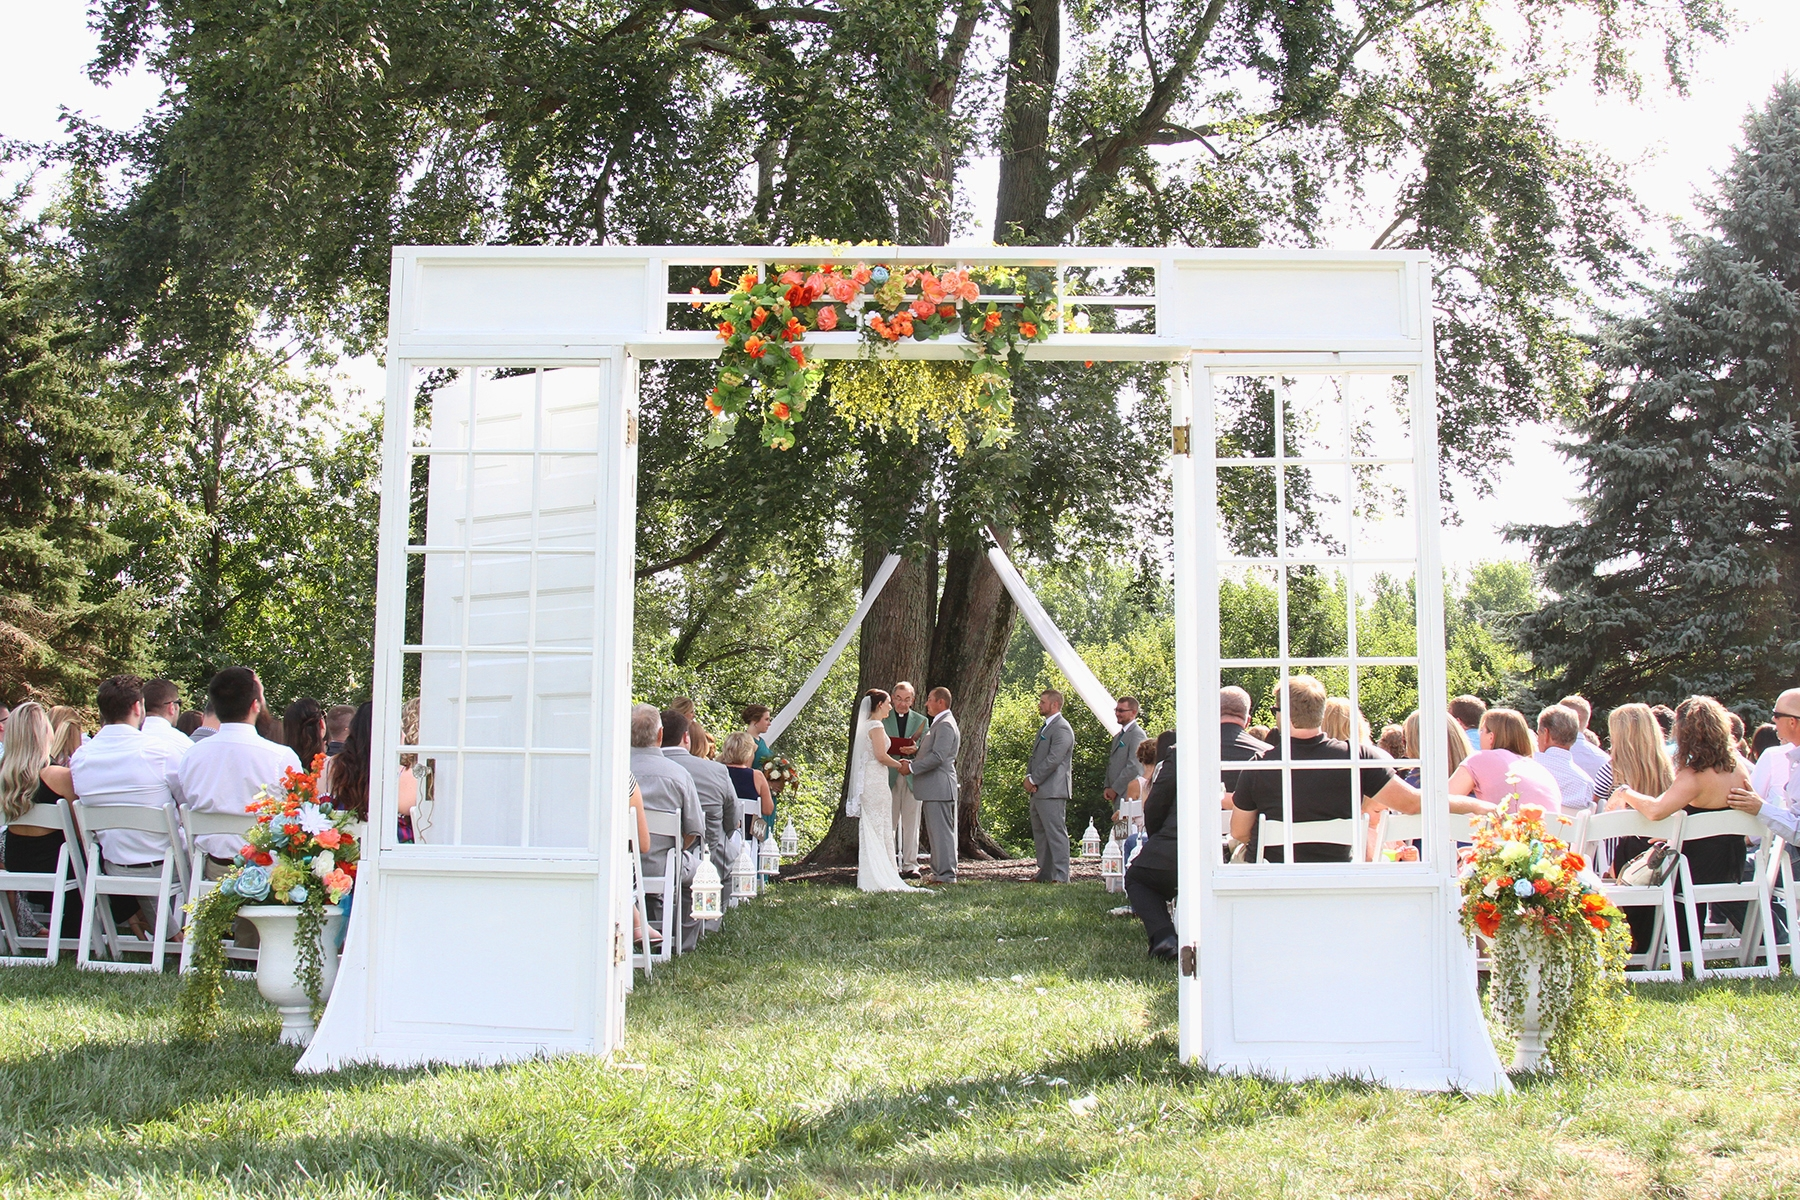 White Door Entrance/Arch